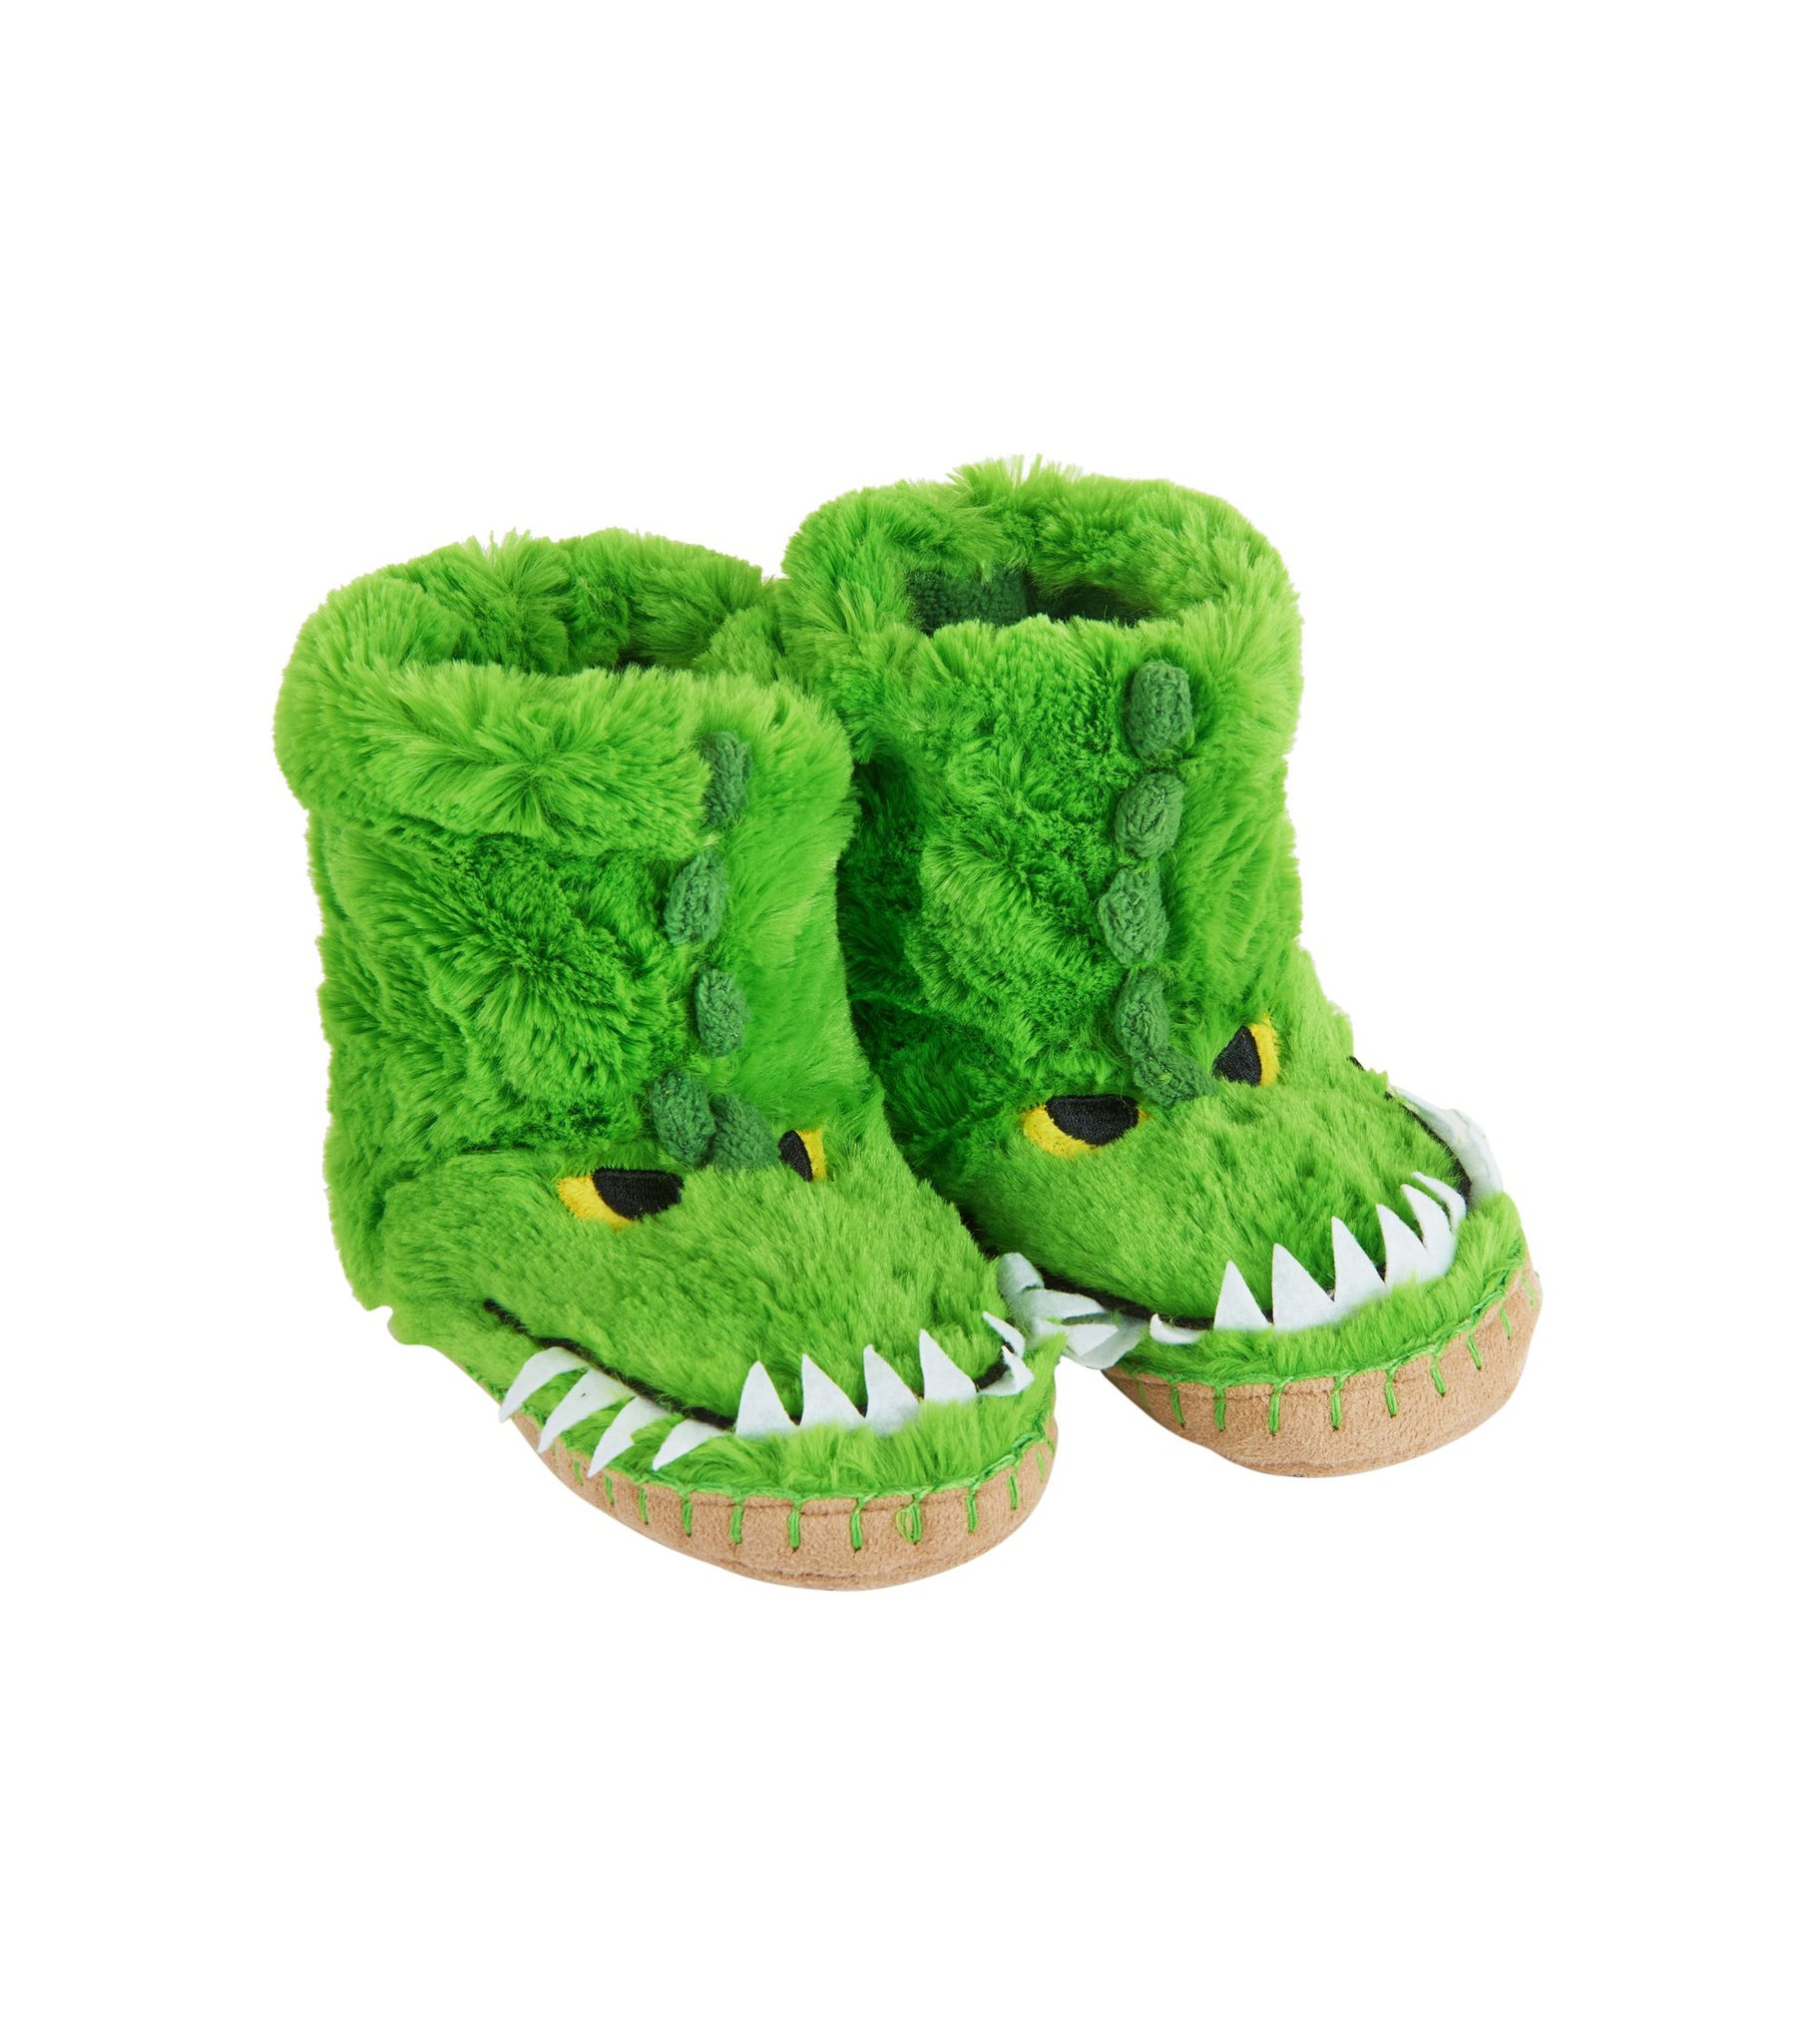 Hatley Little Boys' Kids Slouch Slipper-Gators, Green, Medium/8-10